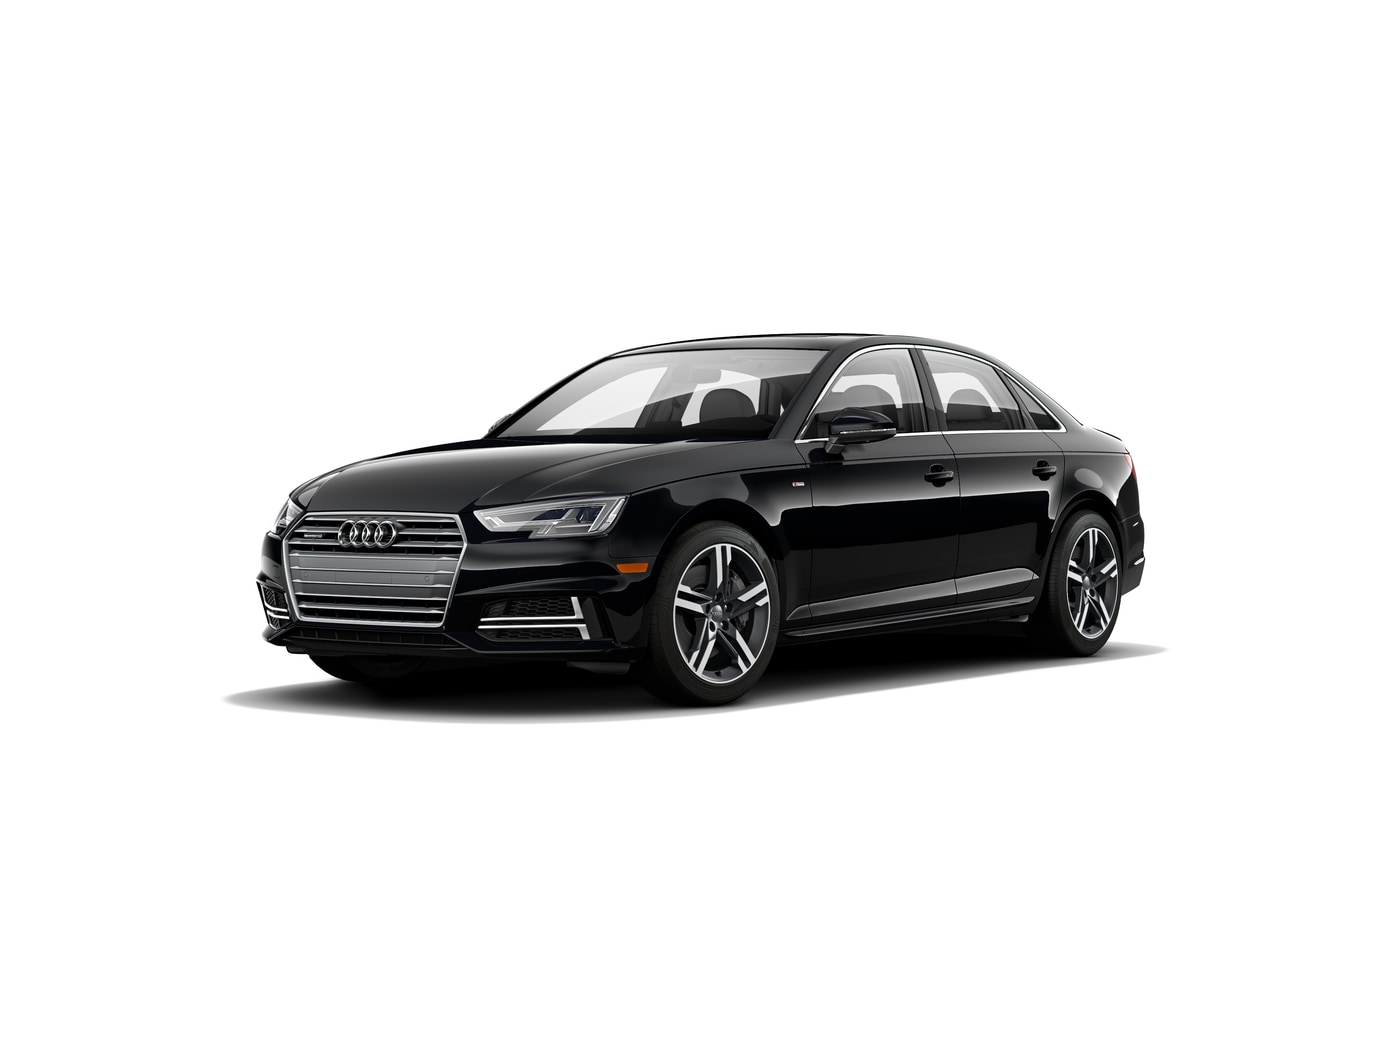 Audi Danbury Vehicles For Sale In Danbury CT - Audi danbury